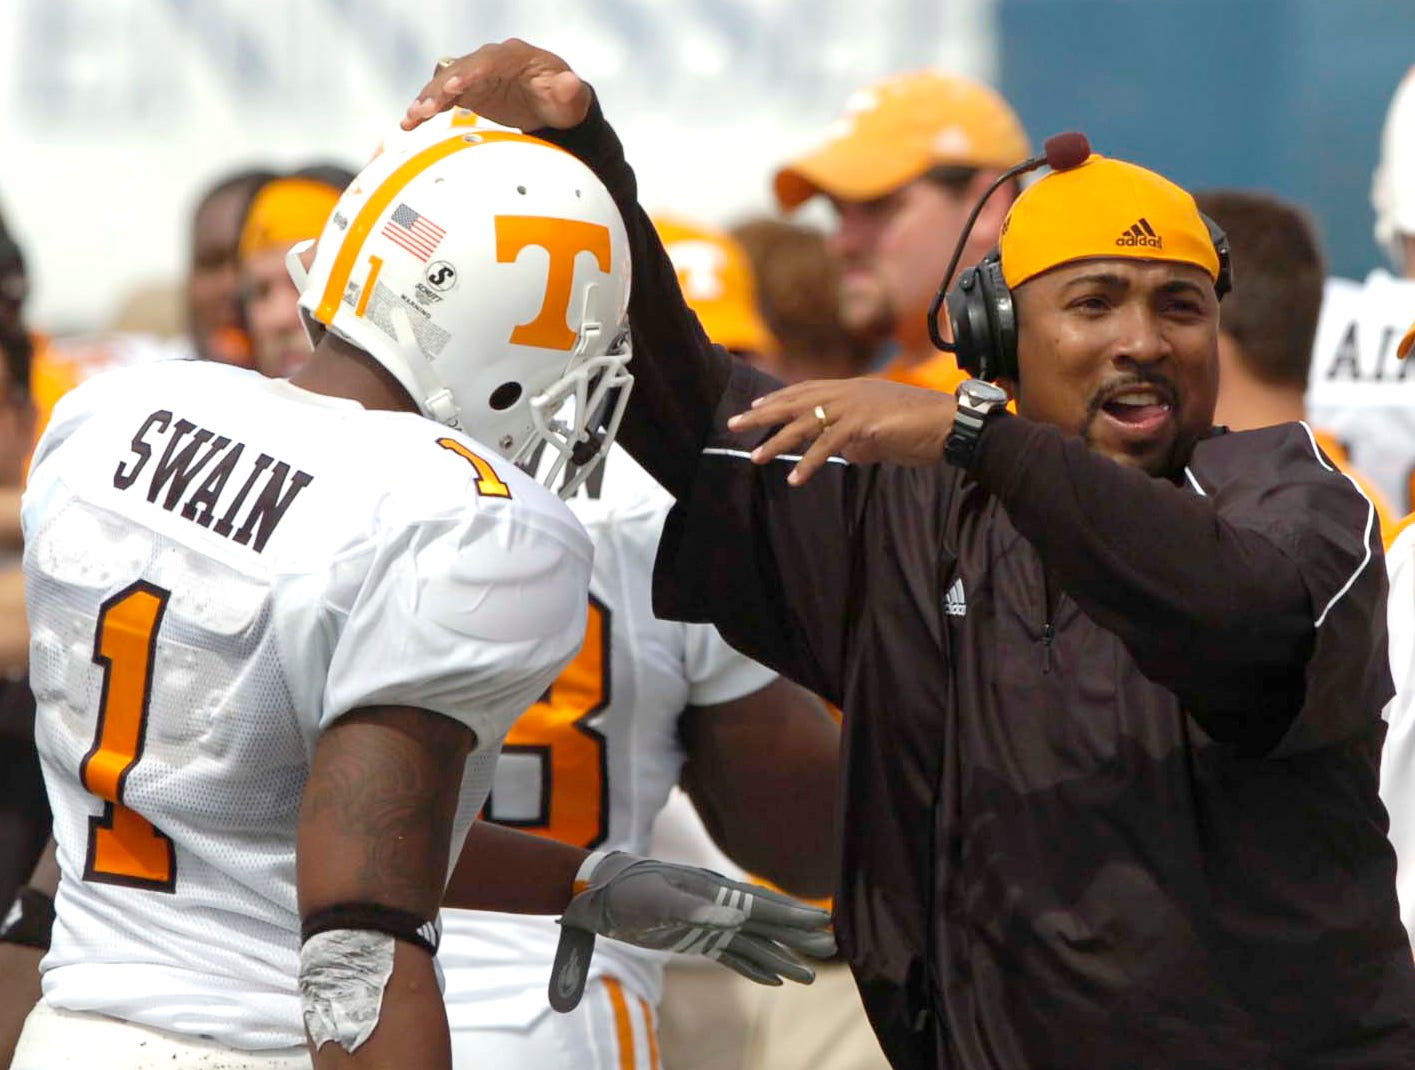 Tennessee assistant coach Trooper Taylor congratulates wide receiver Jayson Swain after Swain scored a touchdown on Saturday in Memphis. The Vols beat the Tigers 41-7, improving to 4-1 for the season.